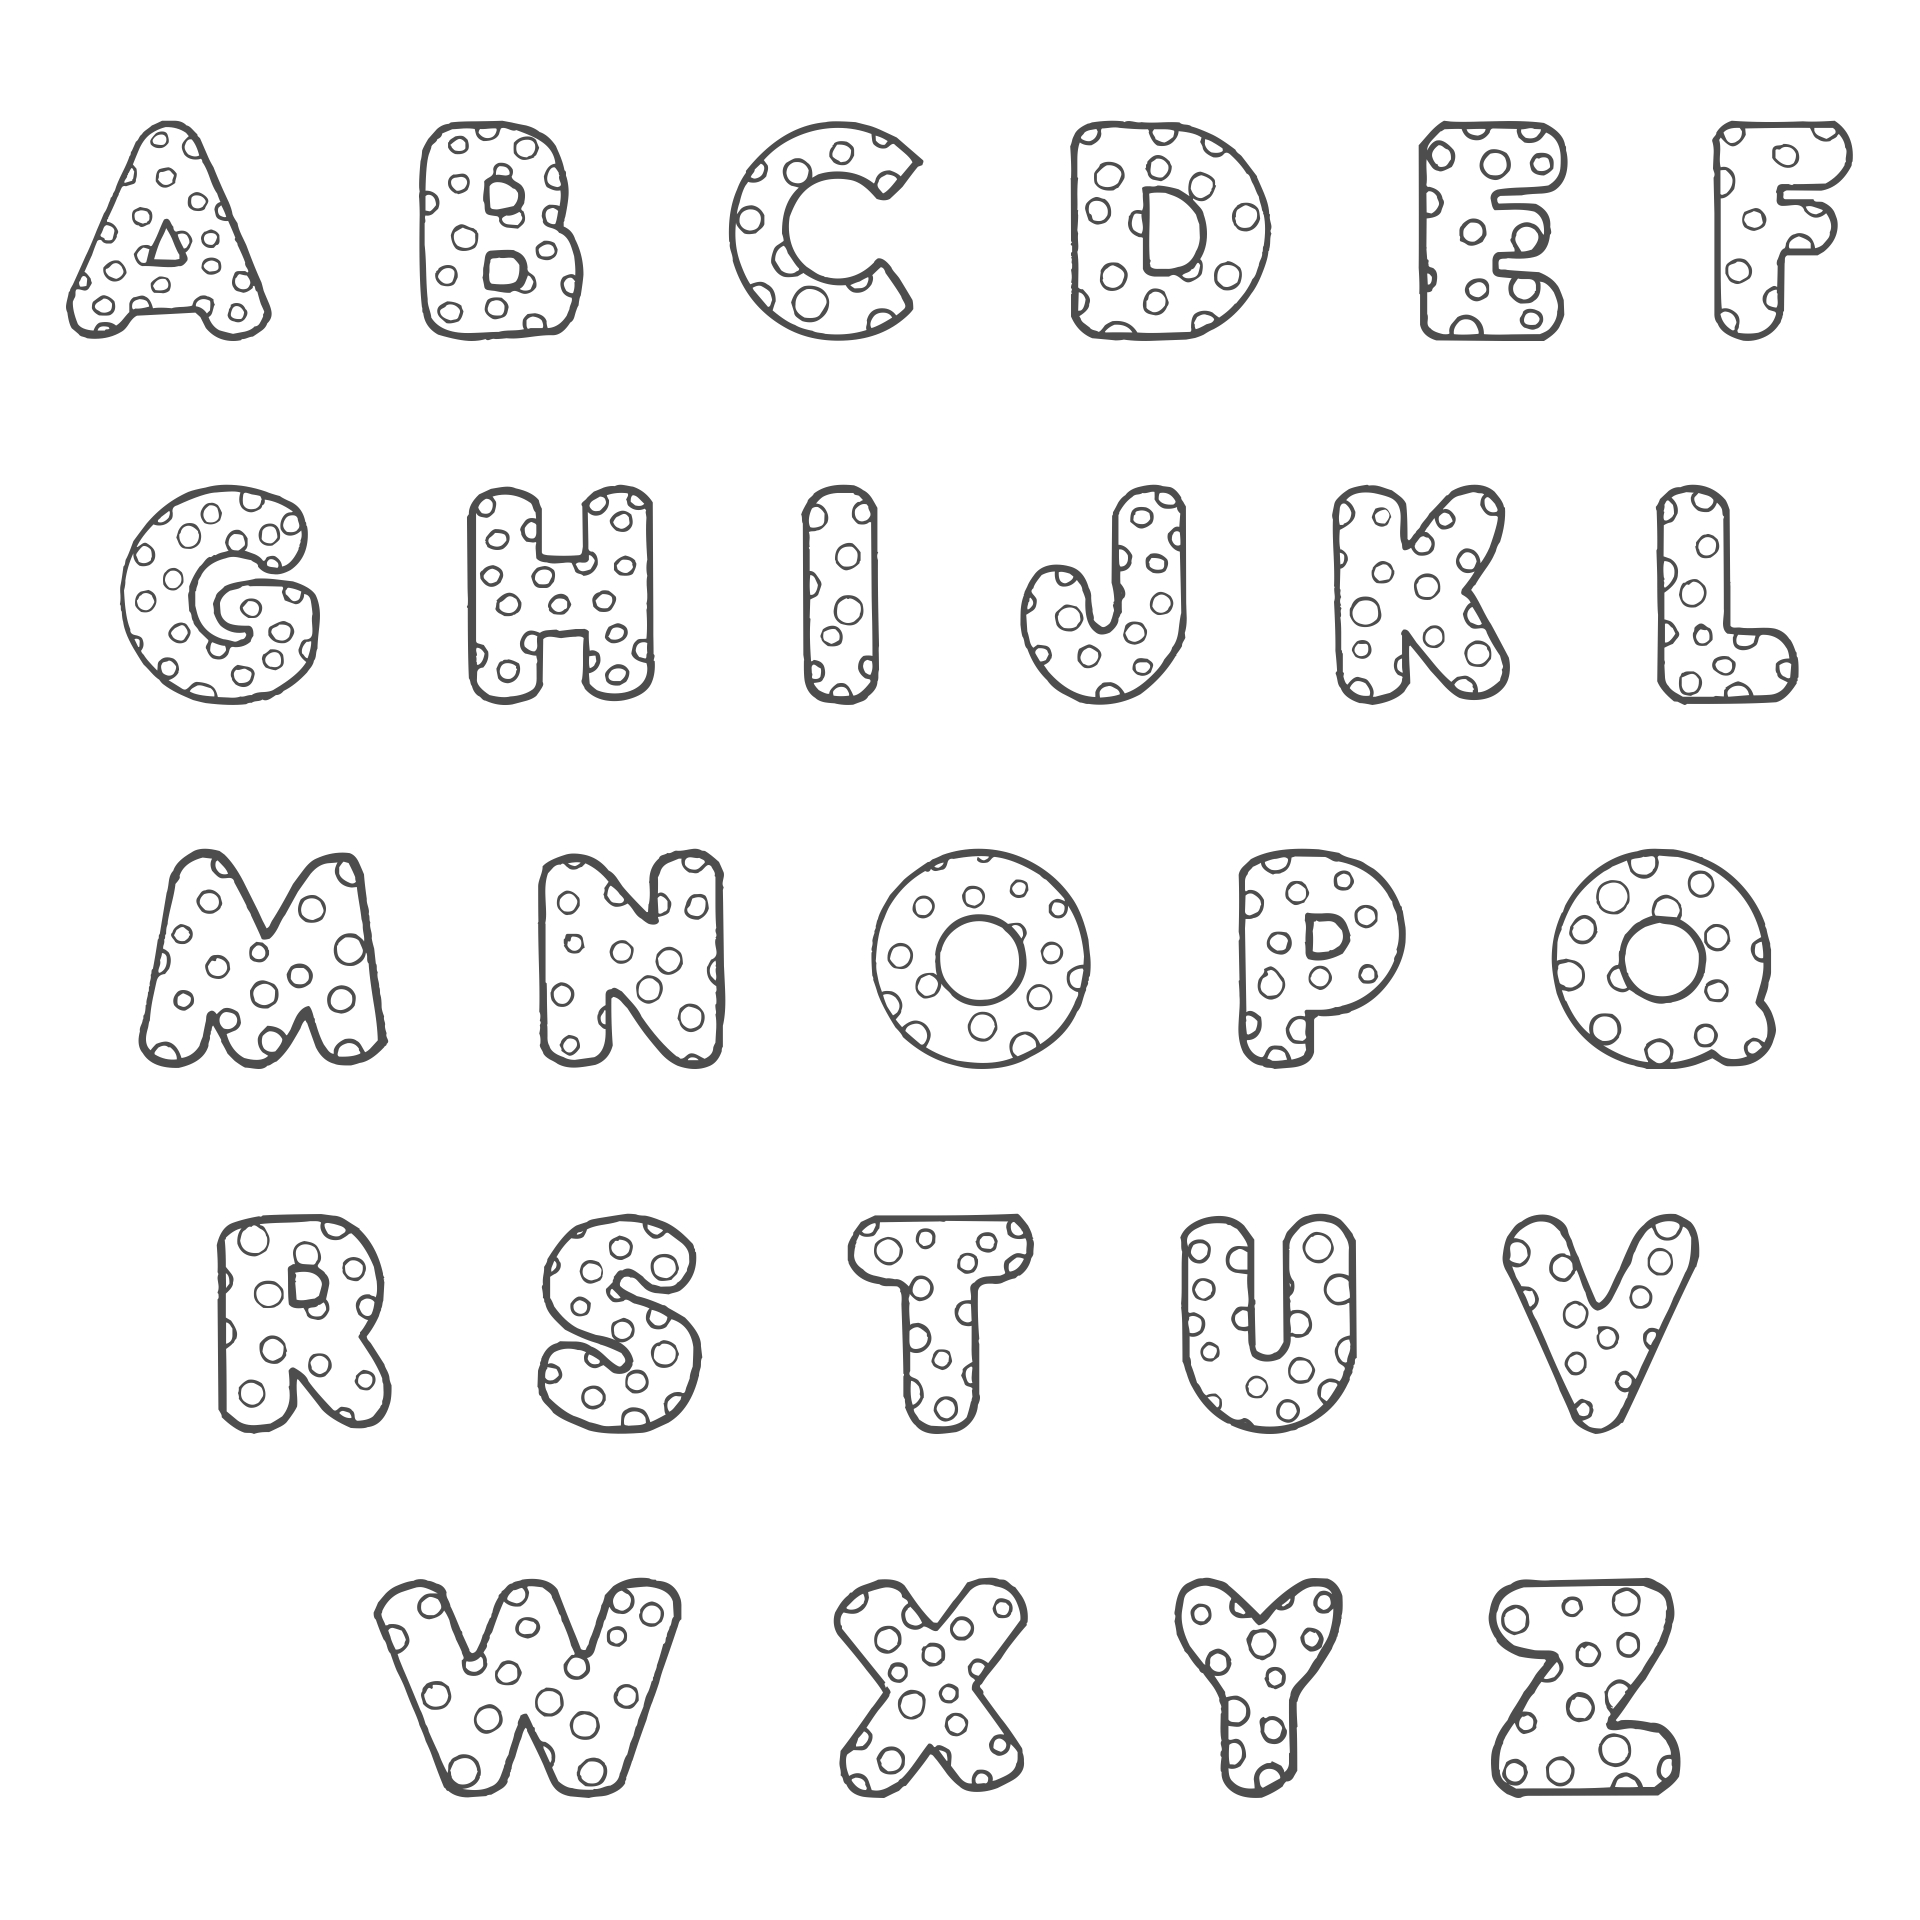 Polka Dot Bubble Letters Coloring Page